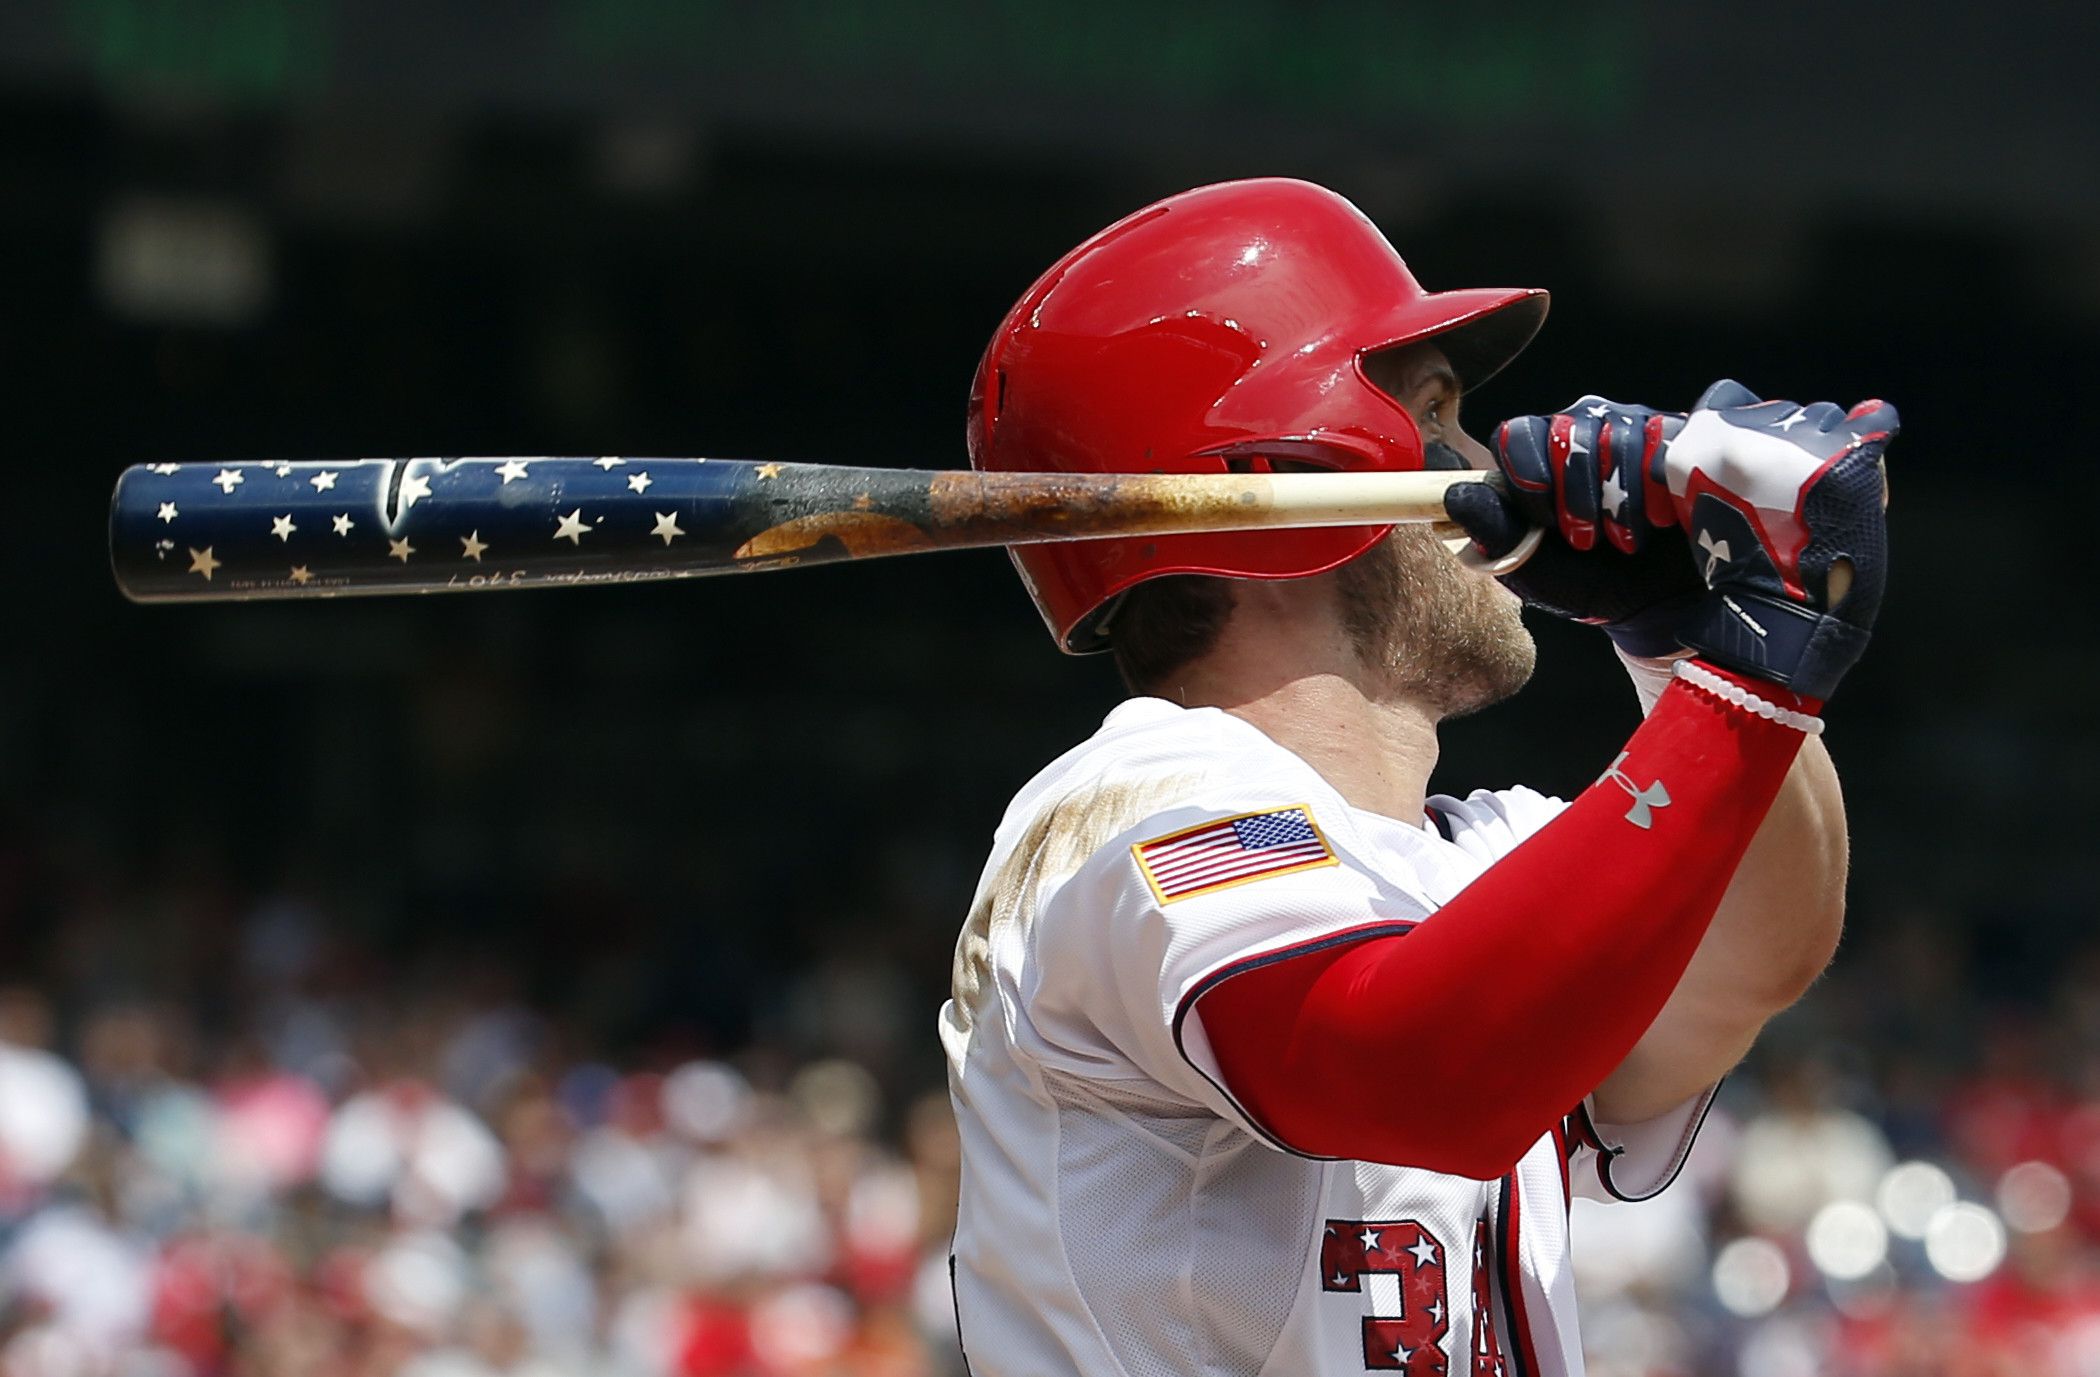 Bryce Harper, Tyler Moore lead Nationals to 9-3 win over Giants on Fourth  of July – Washington Times